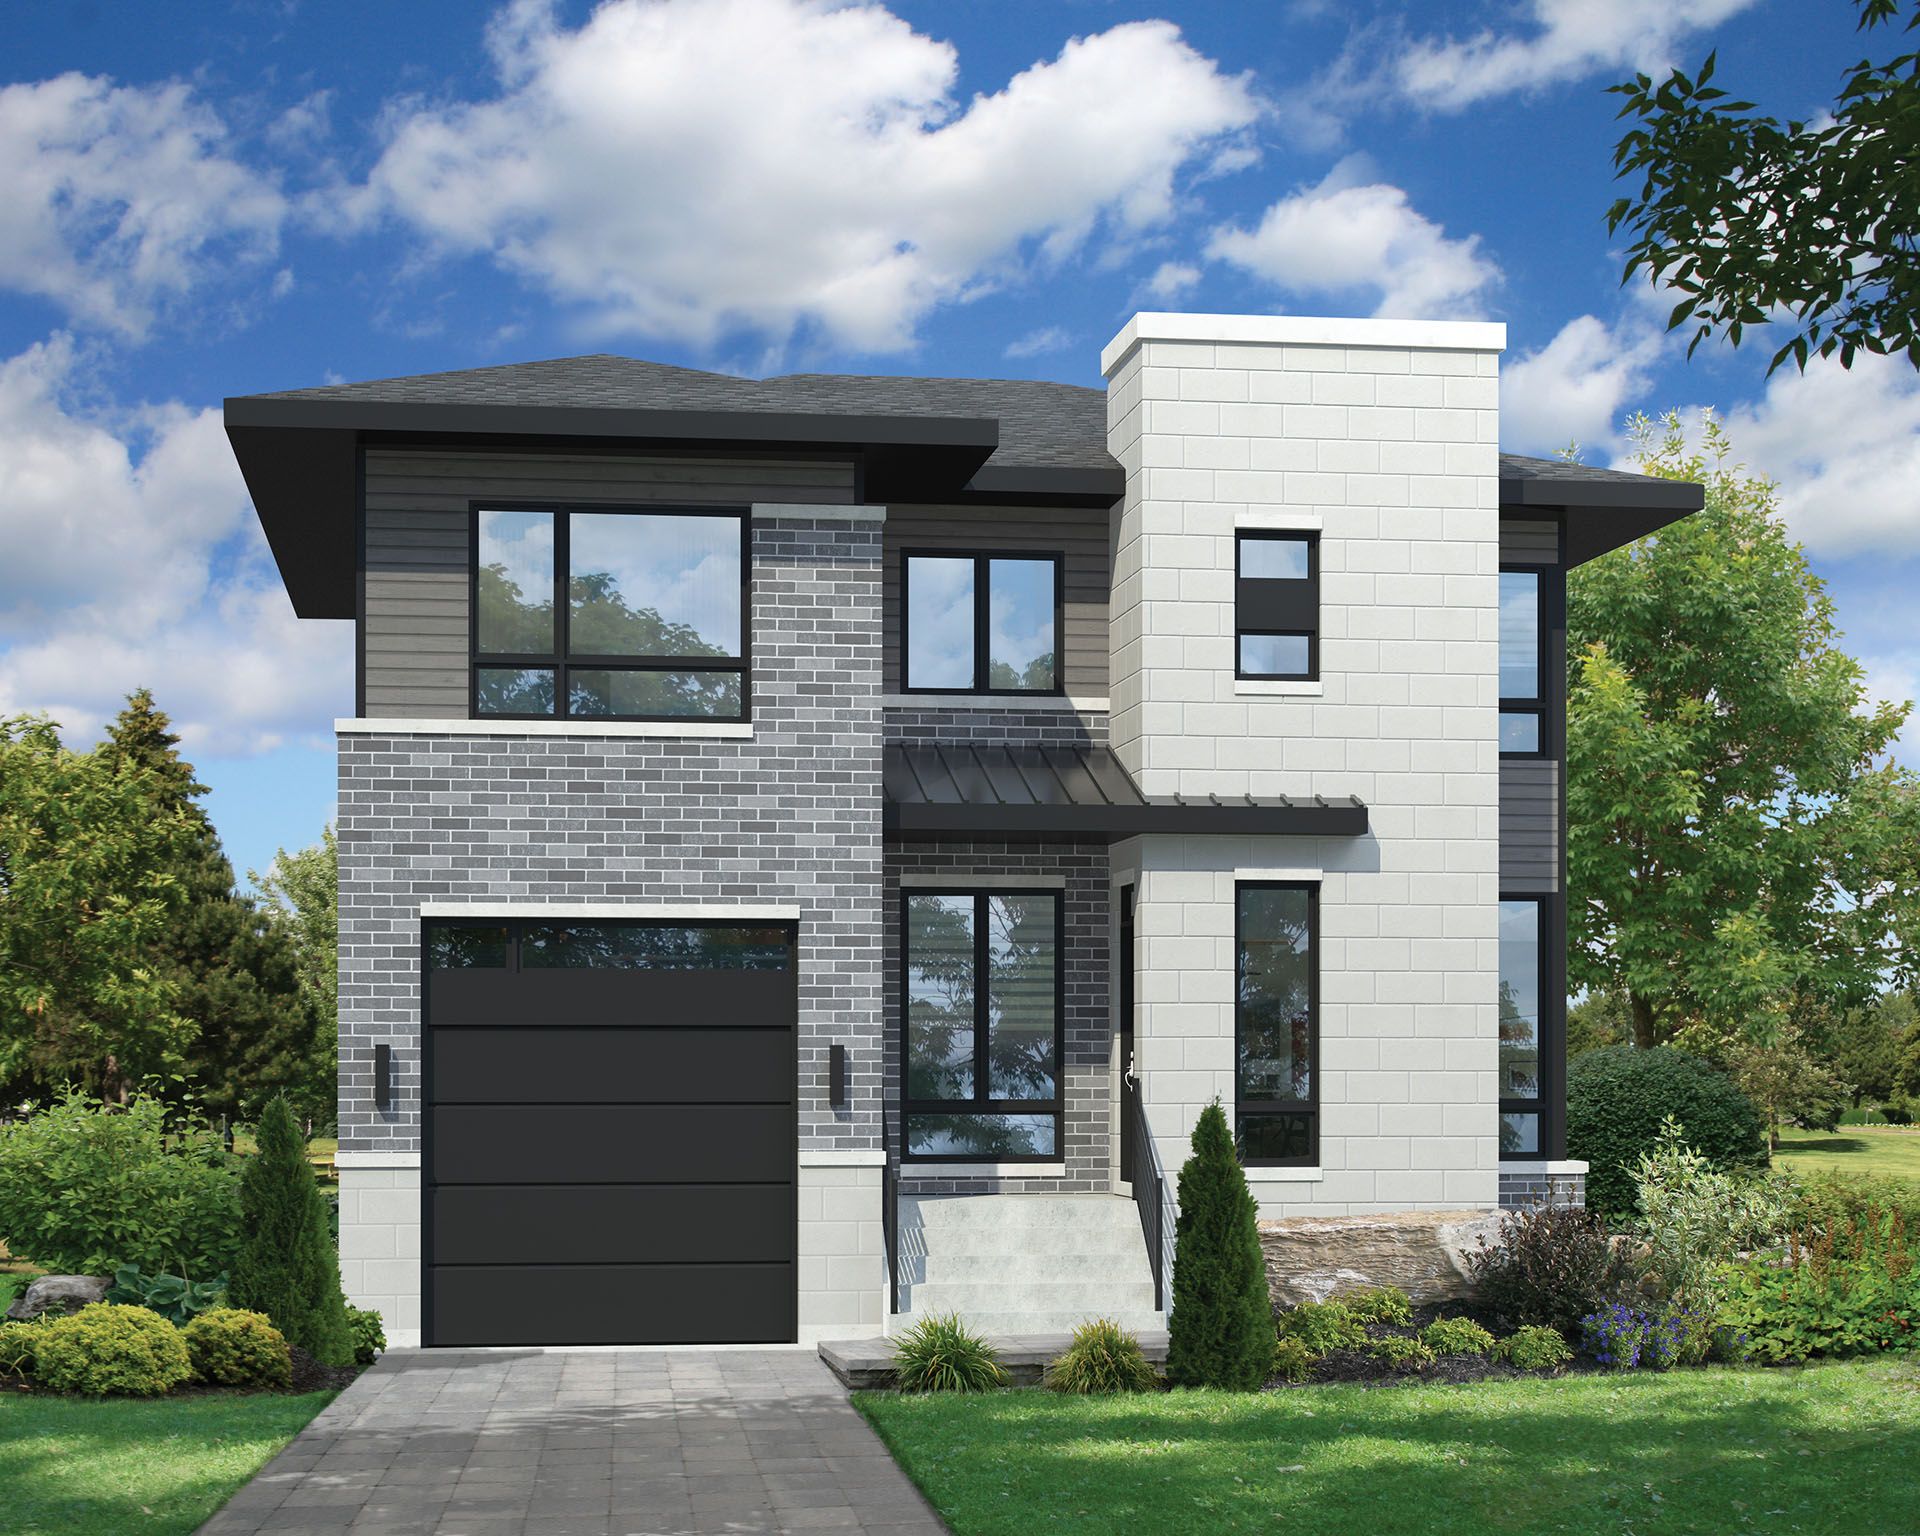 two story contemporary house plan 80806pm 2nd floor master suite cad available canadian. Black Bedroom Furniture Sets. Home Design Ideas